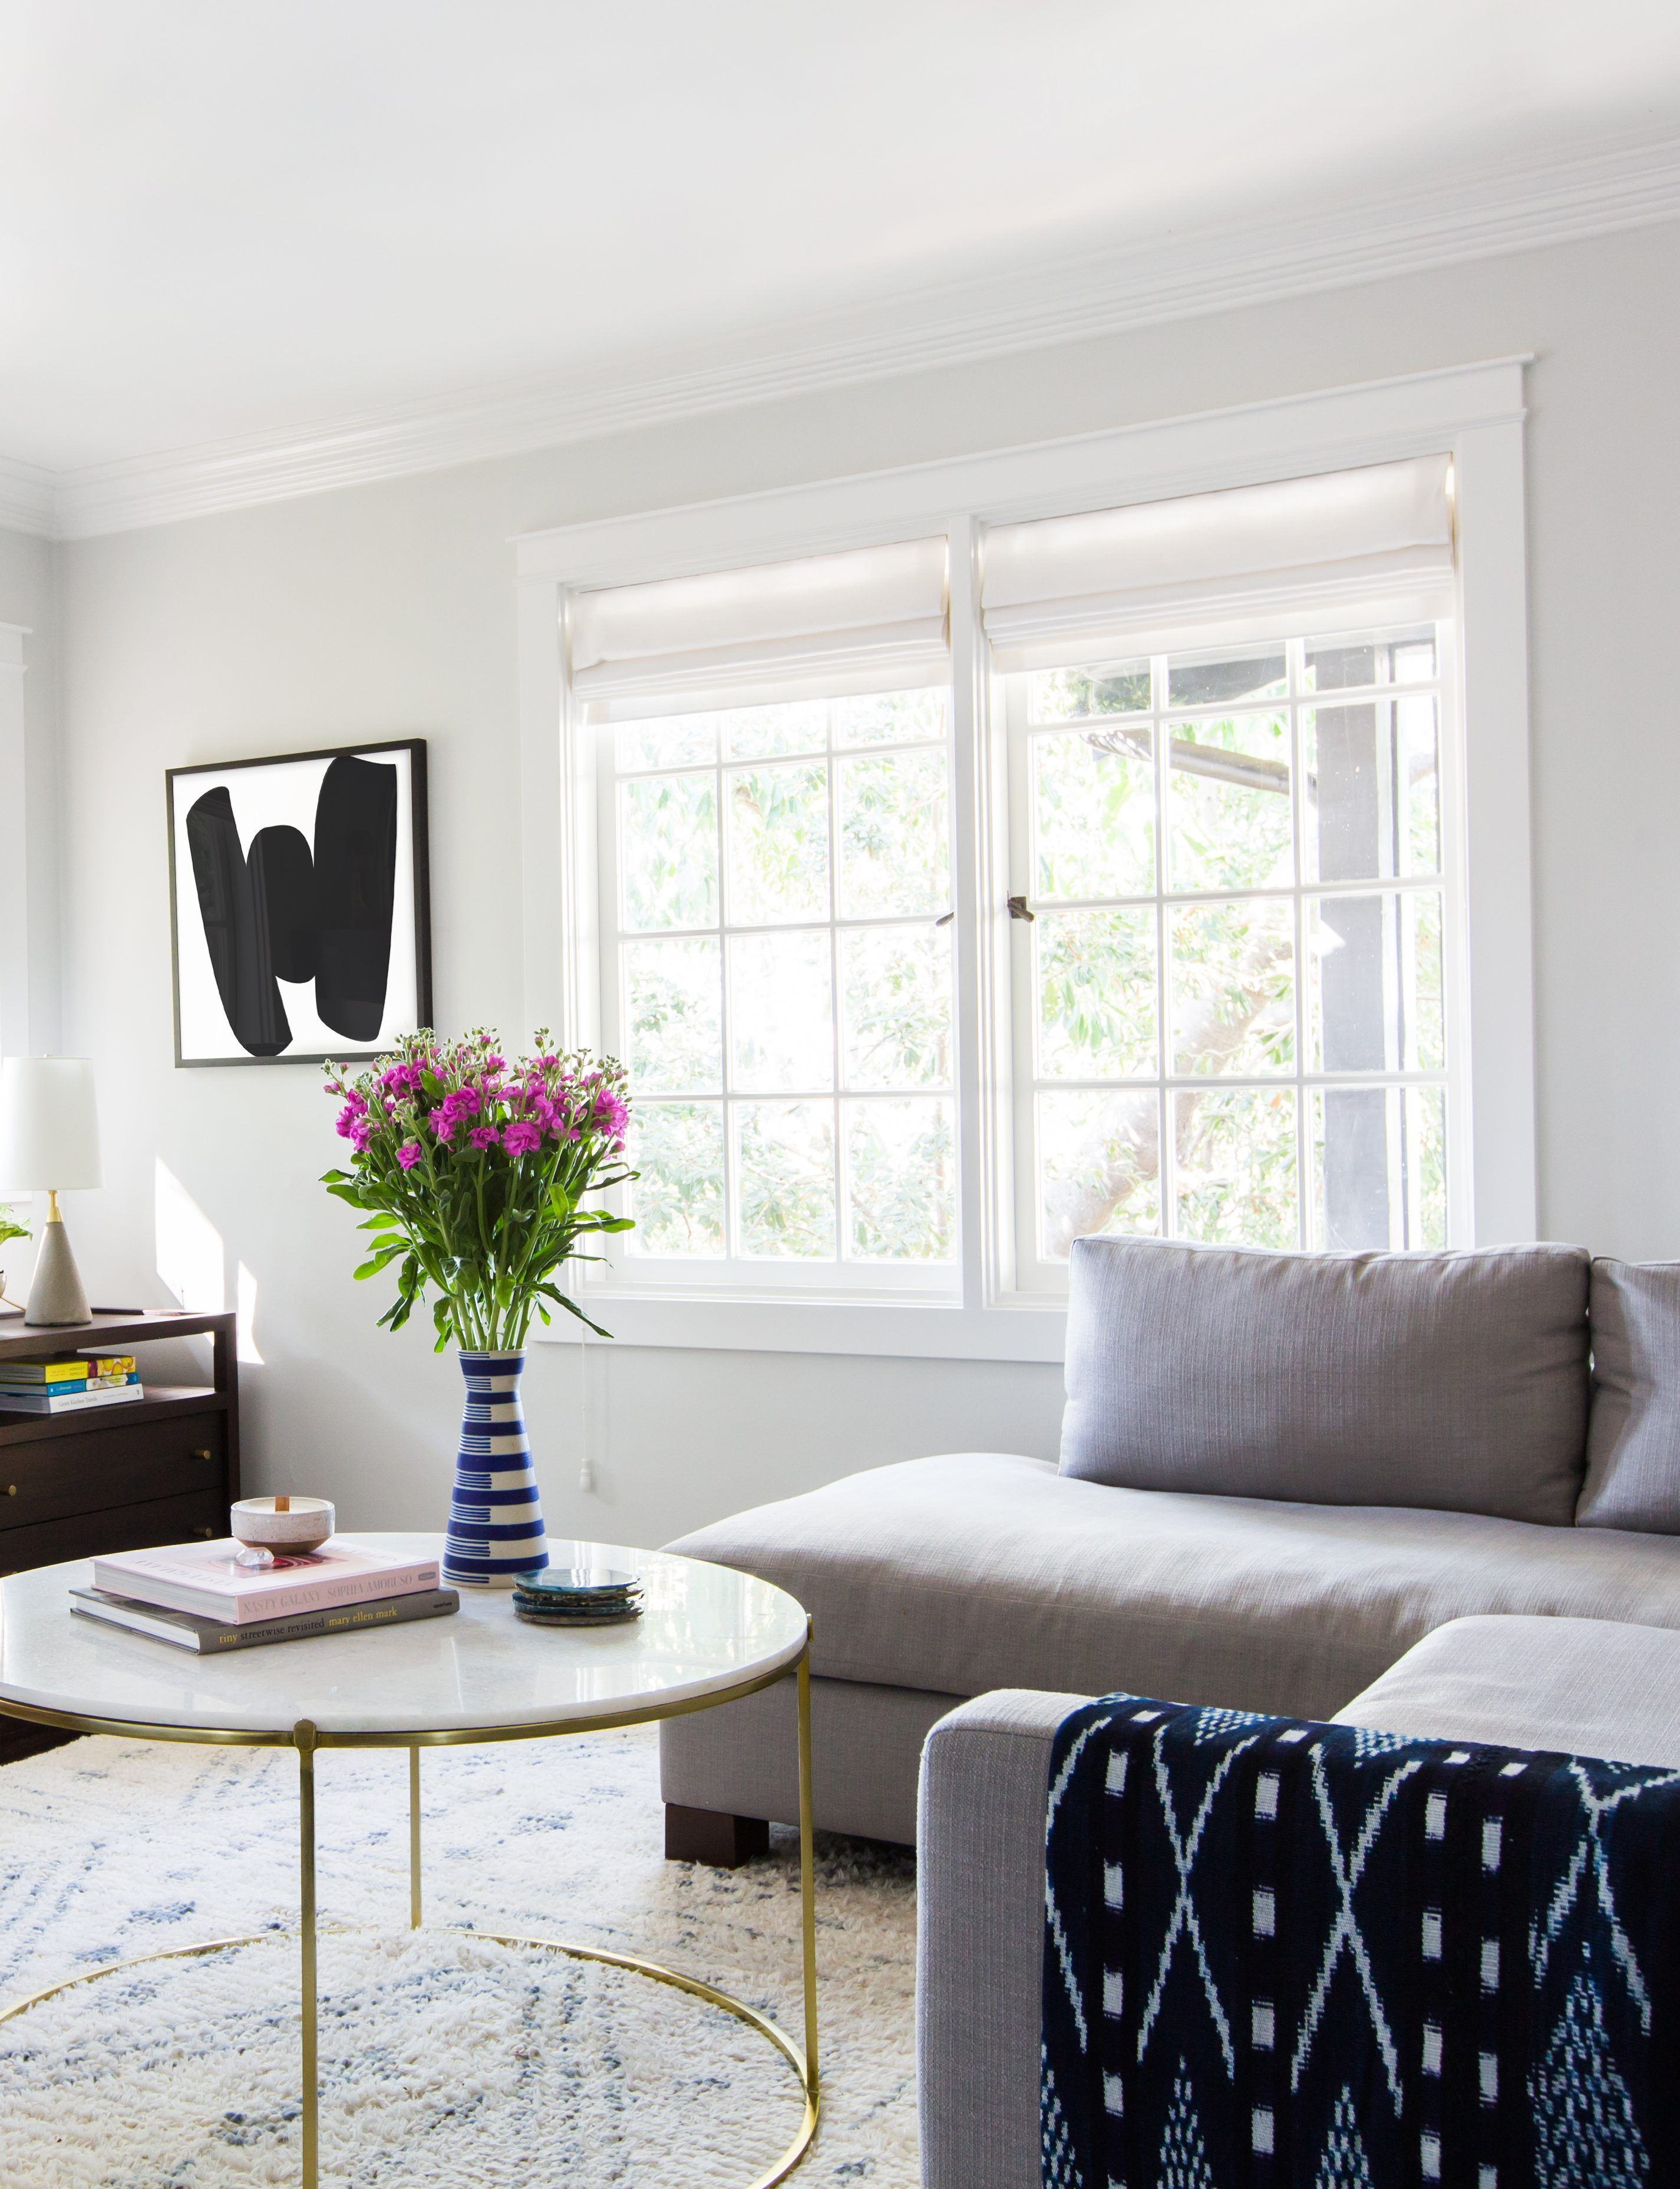 light gray paint colors are trickier to decorate with than